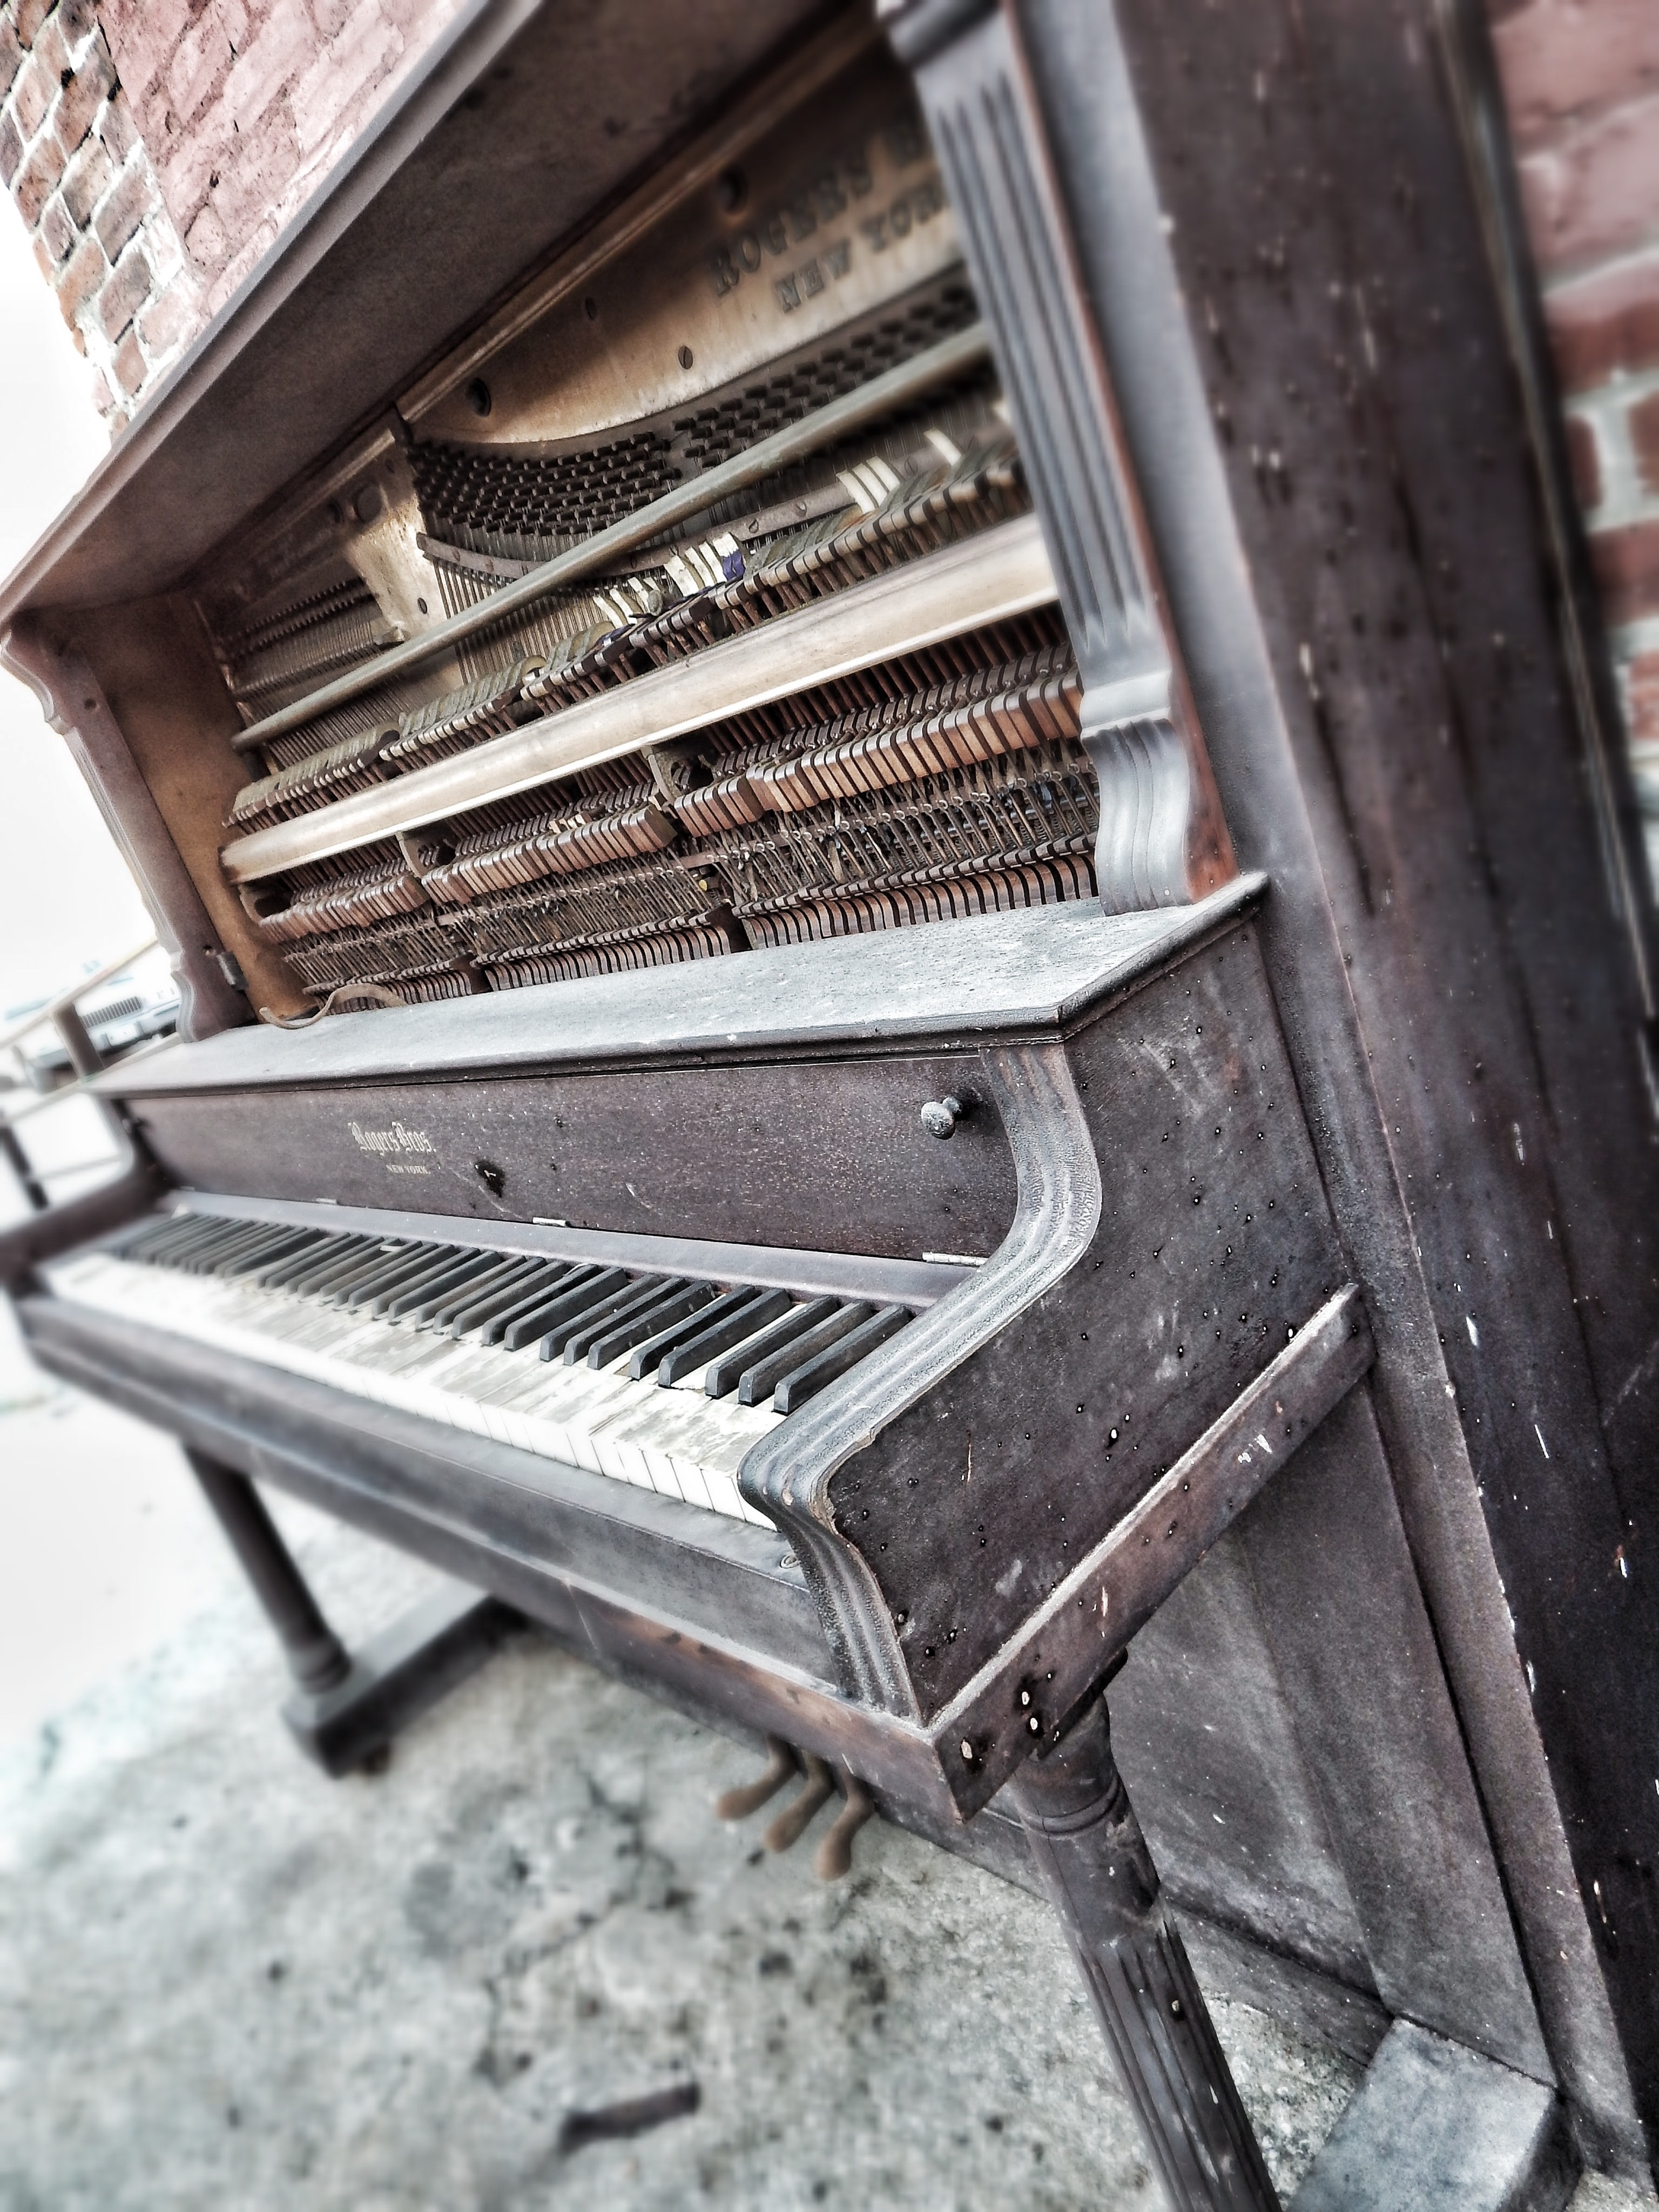 An antique wooden piano by a brick wall in West Bottoms.